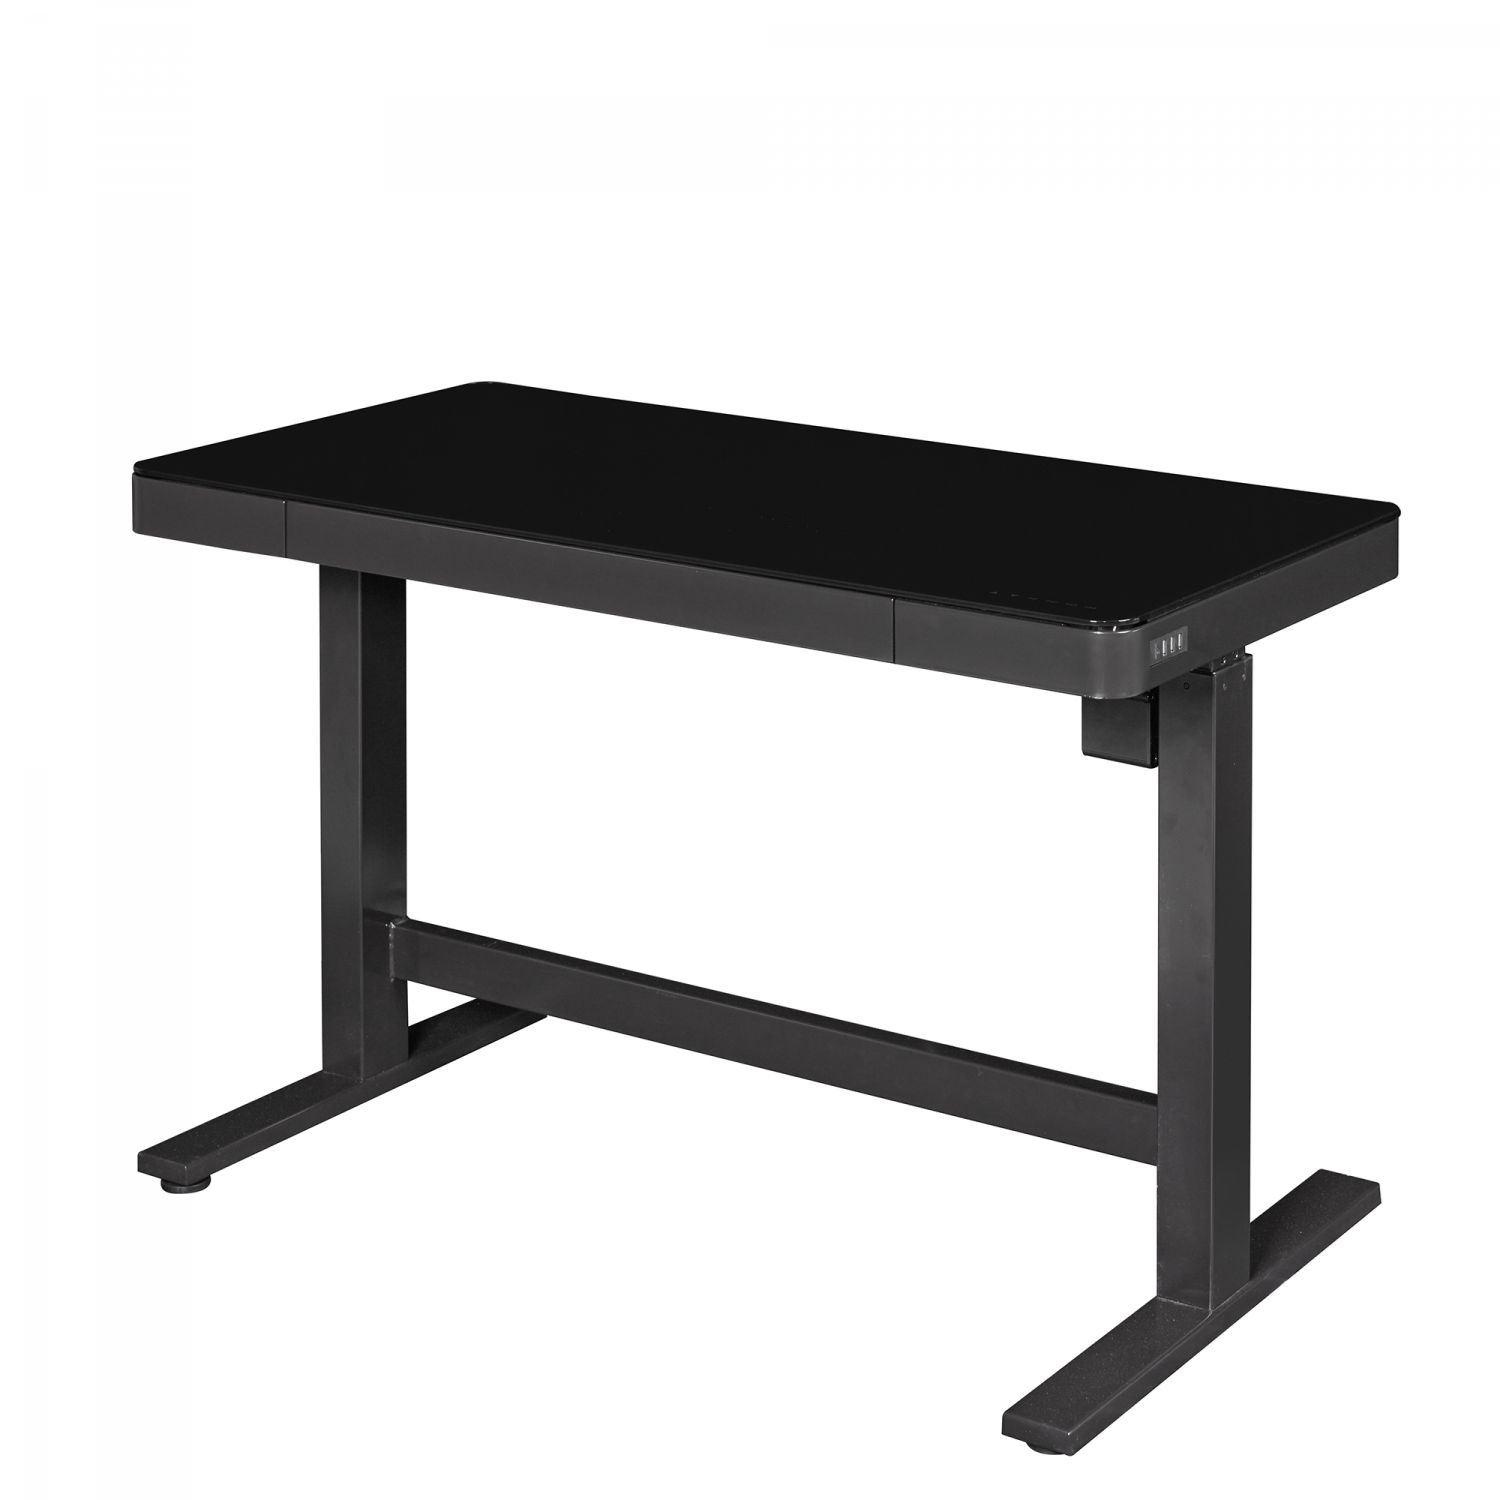 Adjustable Height Desk Black D Odp10444 48d913